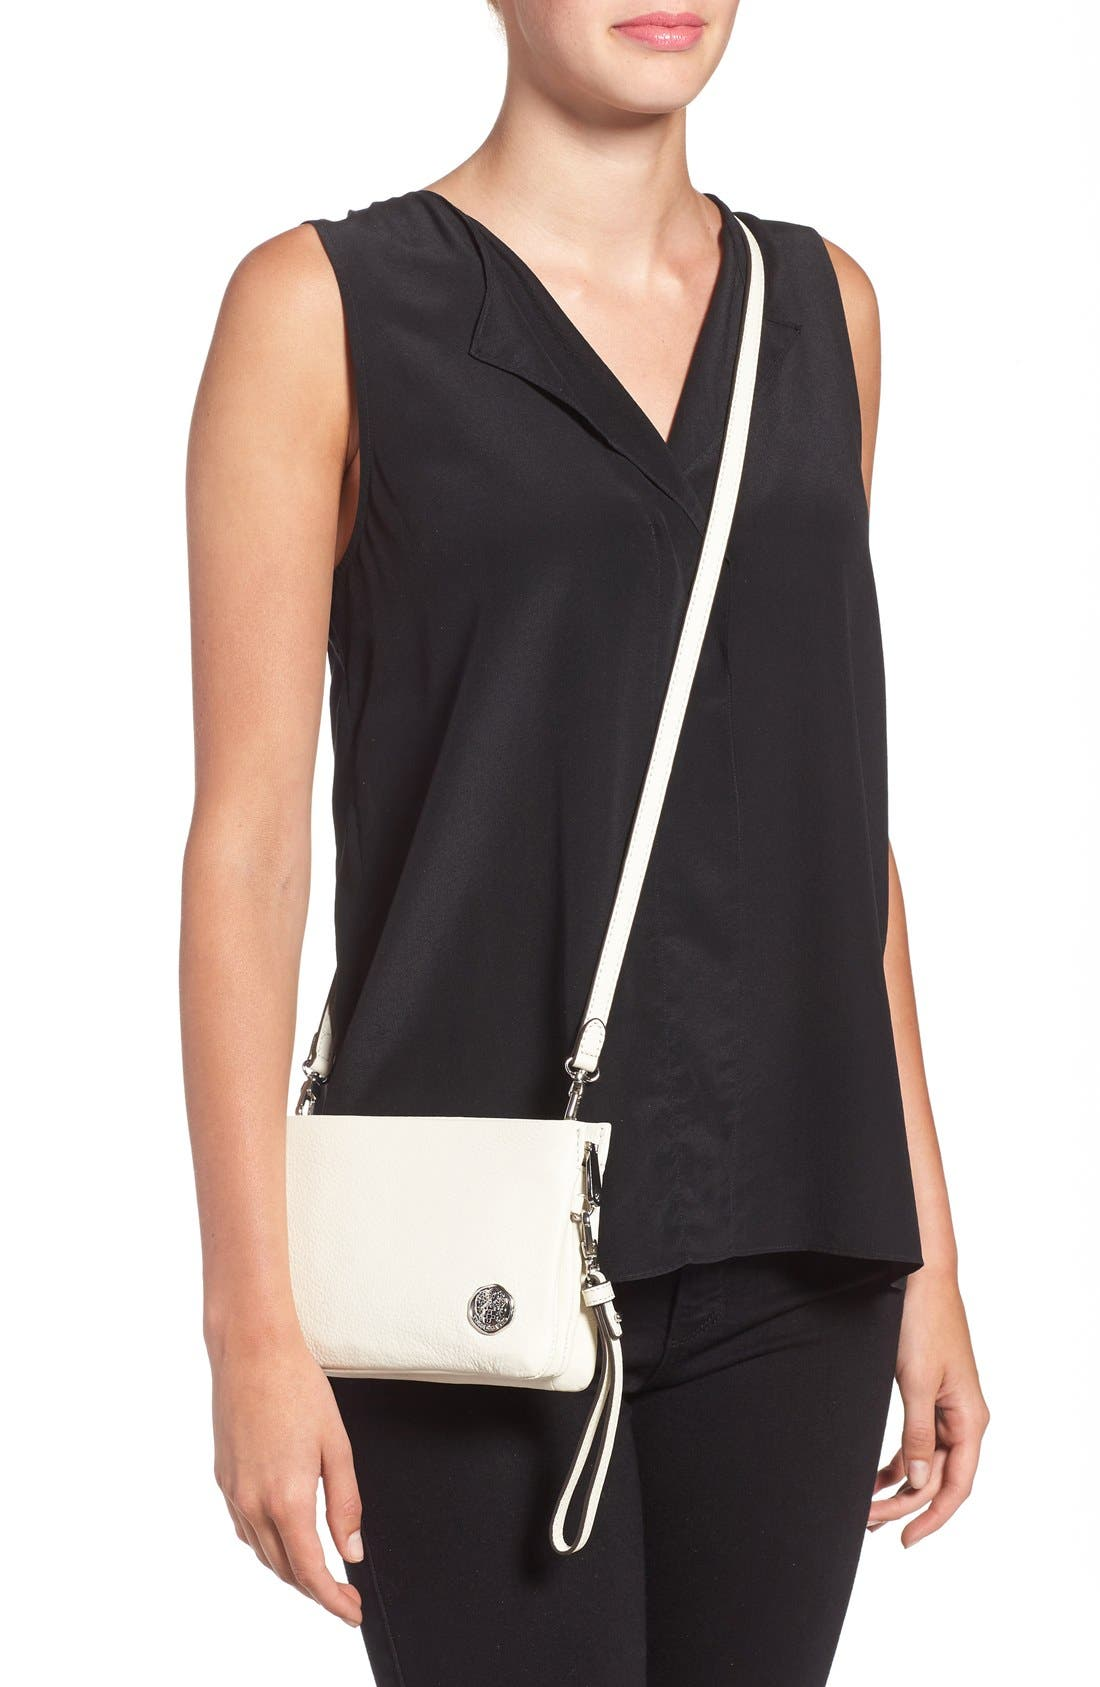 'Cami' Leather Crossbody Bag,                             Alternate thumbnail 43, color,